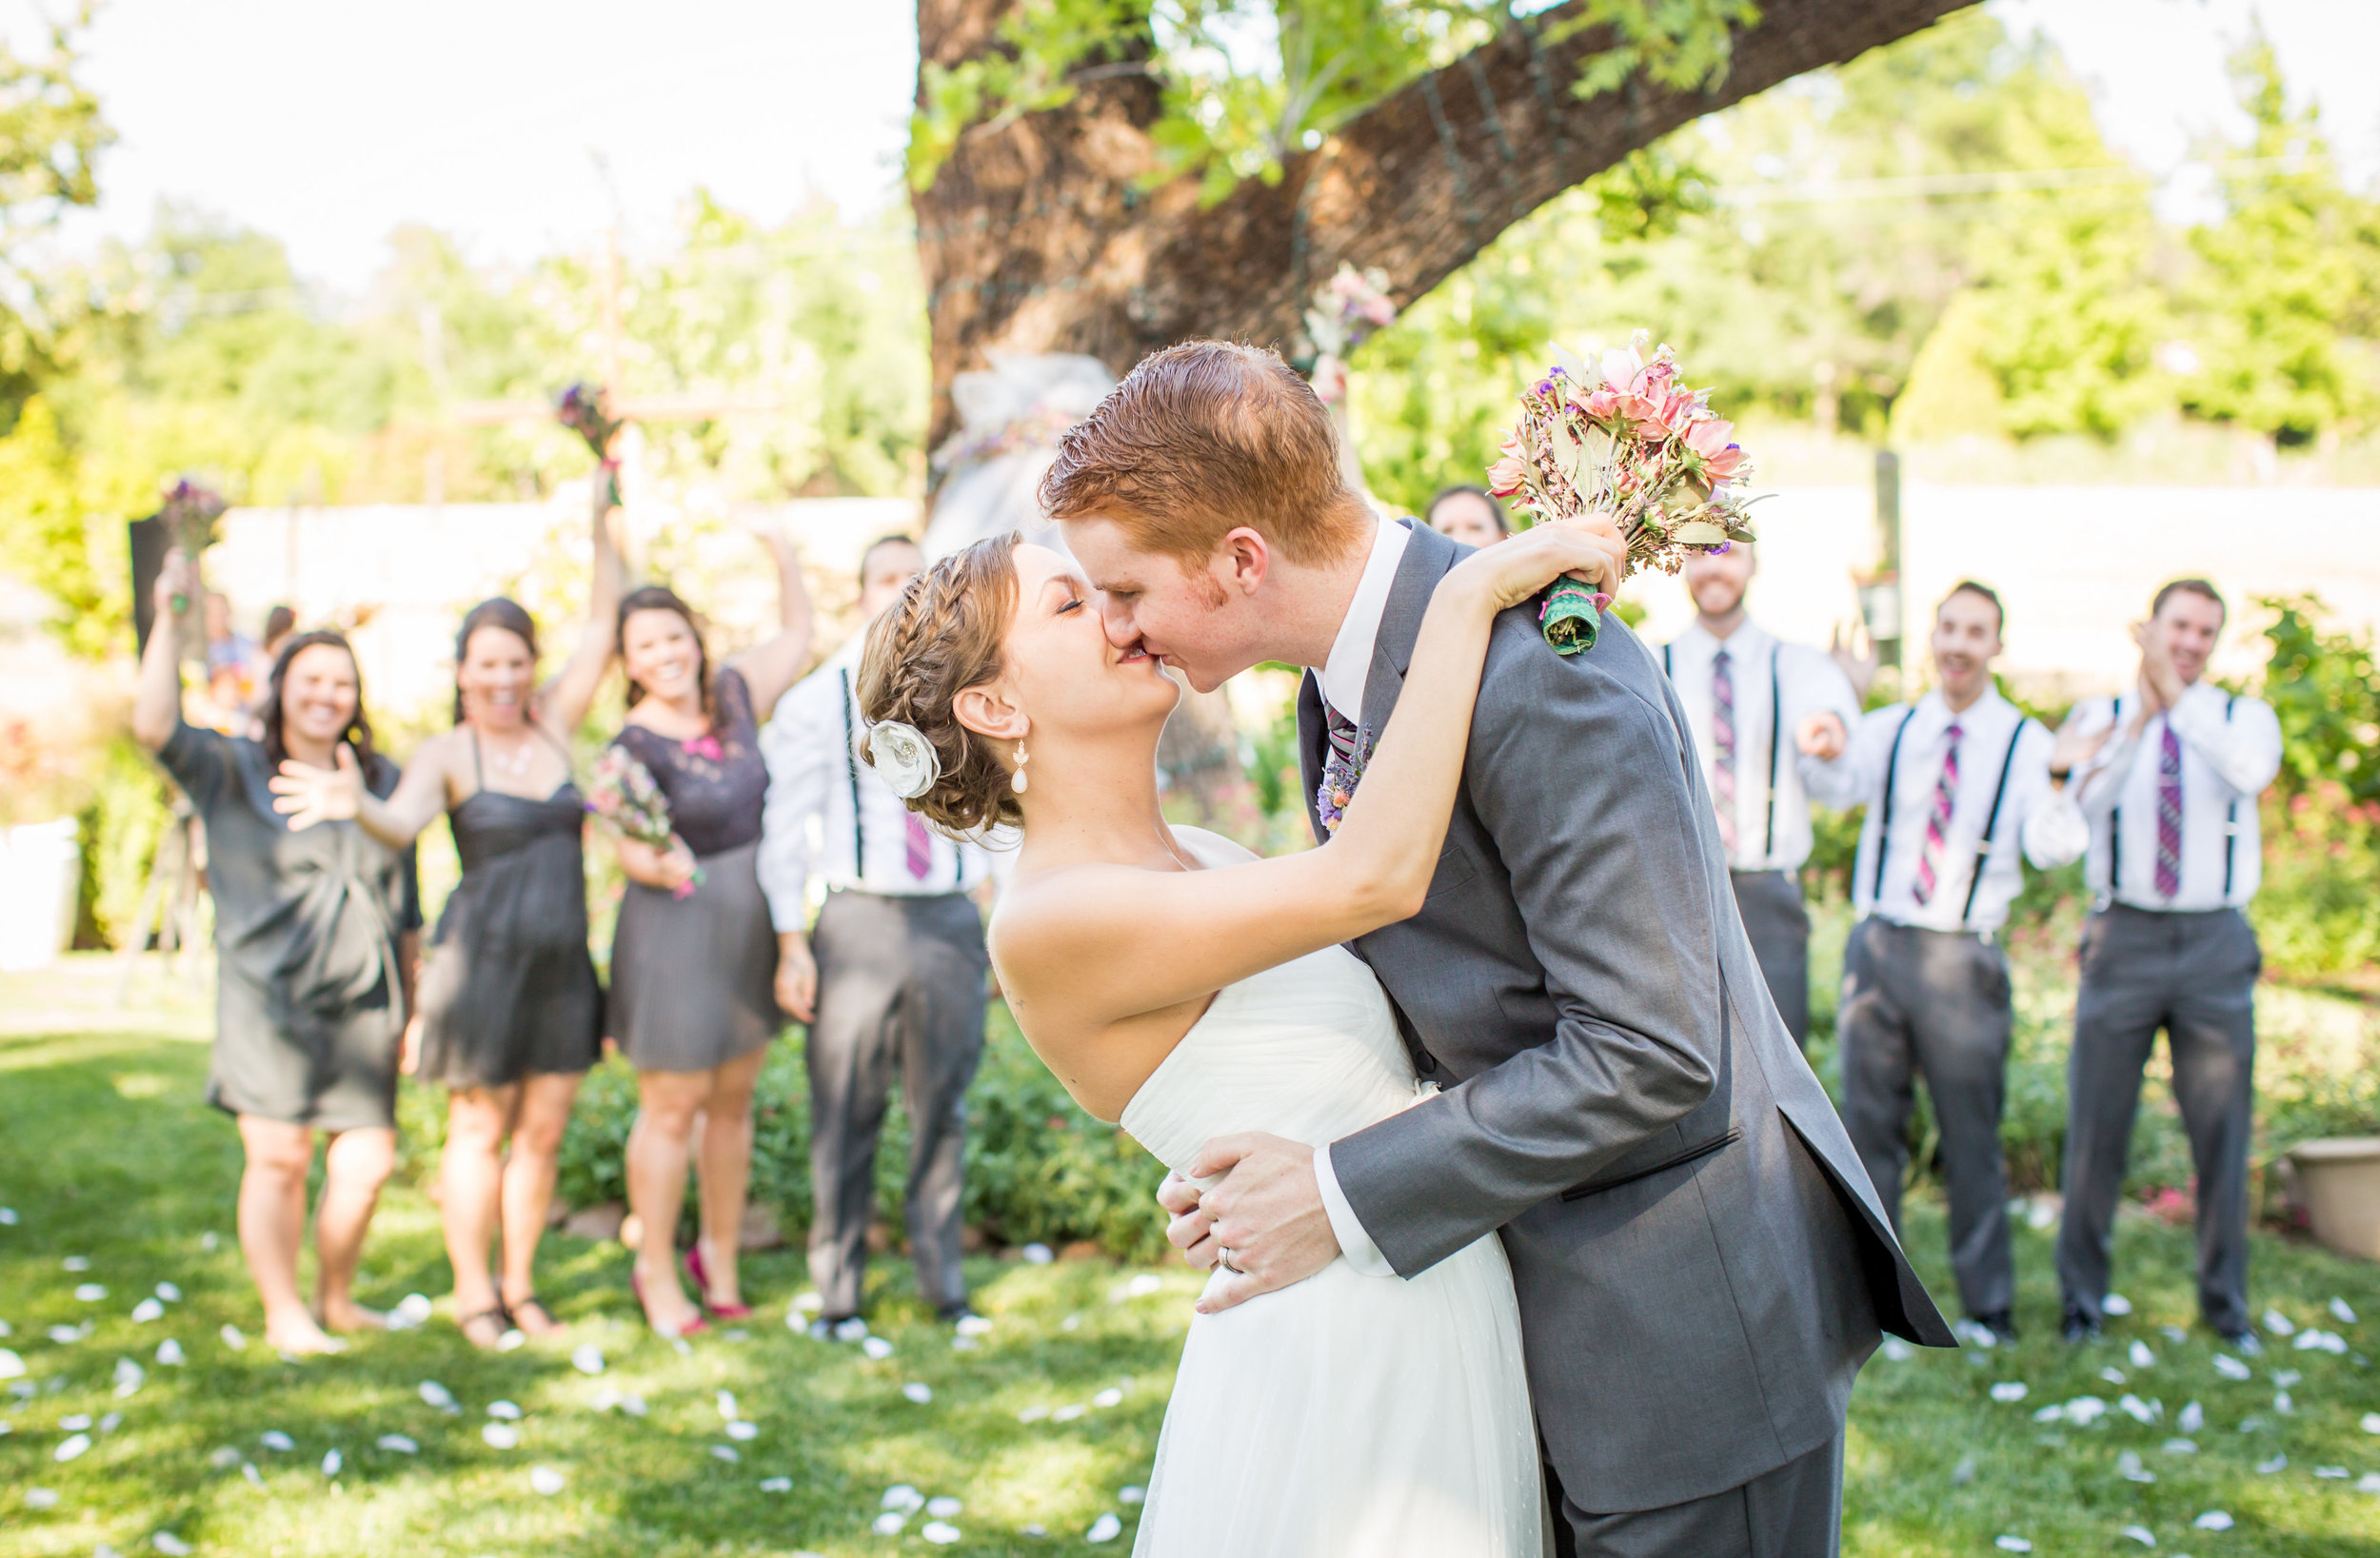 Merrit & Eric | 5.2.15 - Photo:  Katelyn Owens Photography